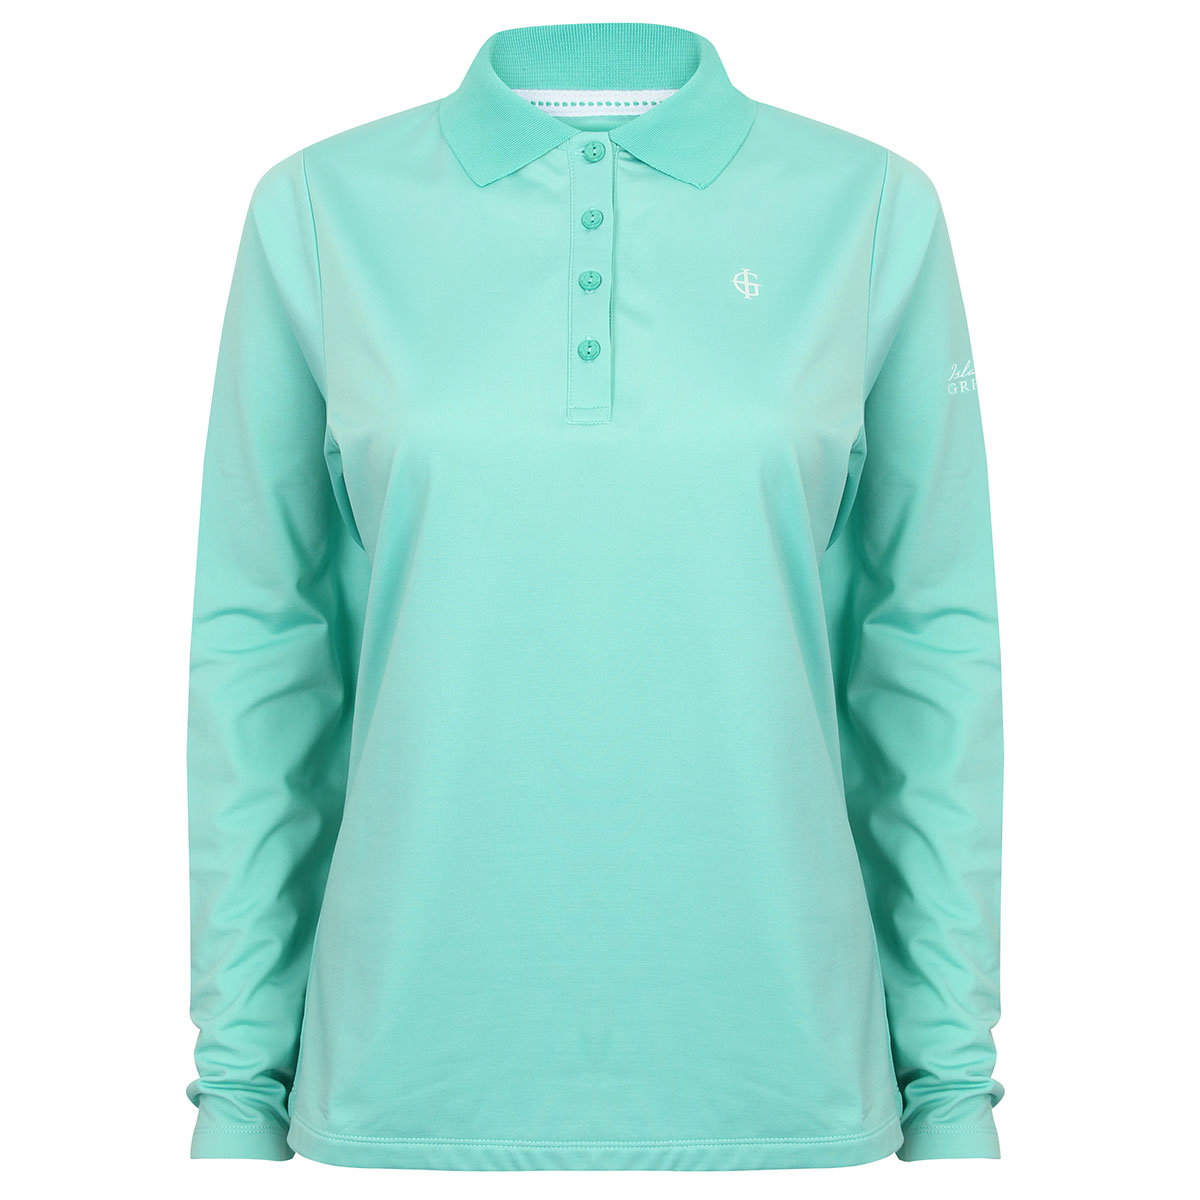 Island Green 2017 Ladies Long Sleeve 4 Button Branded Golf